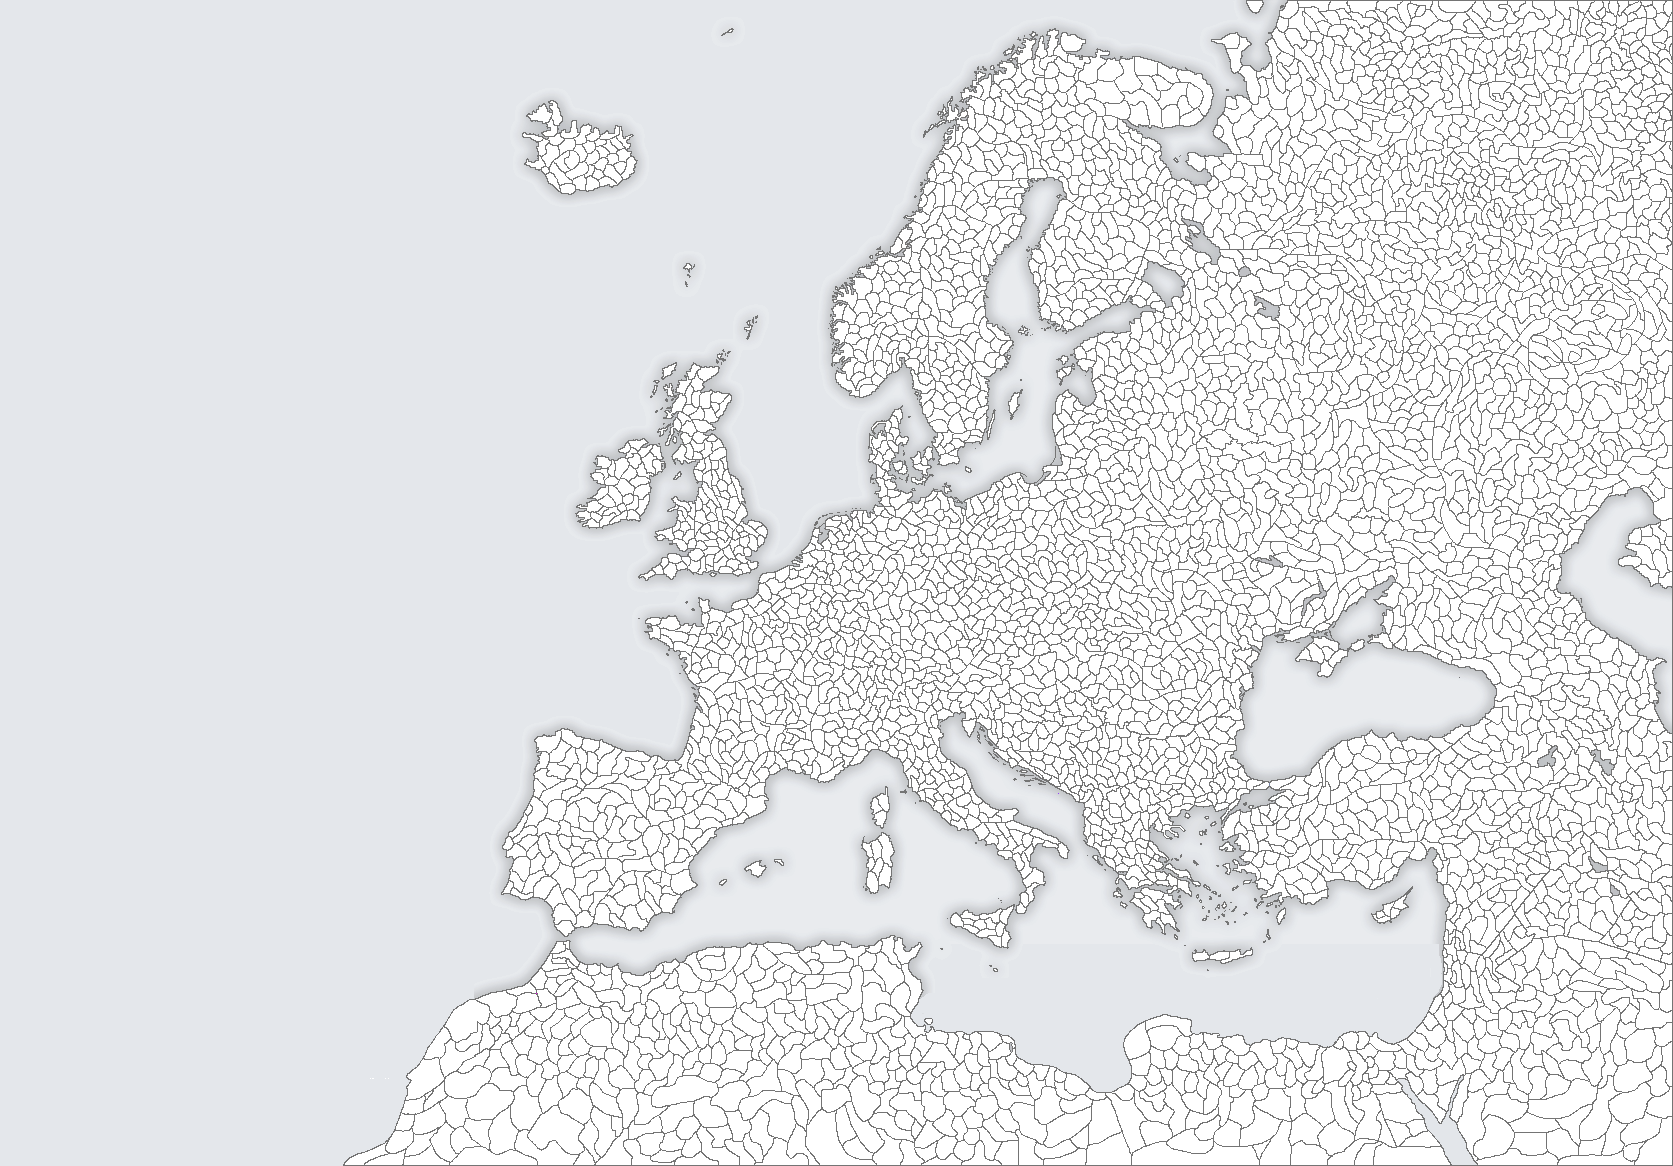 Map Of Europe With Provinces.Europe With Many Provinces By Eddsworldbatboy1 On Deviantart